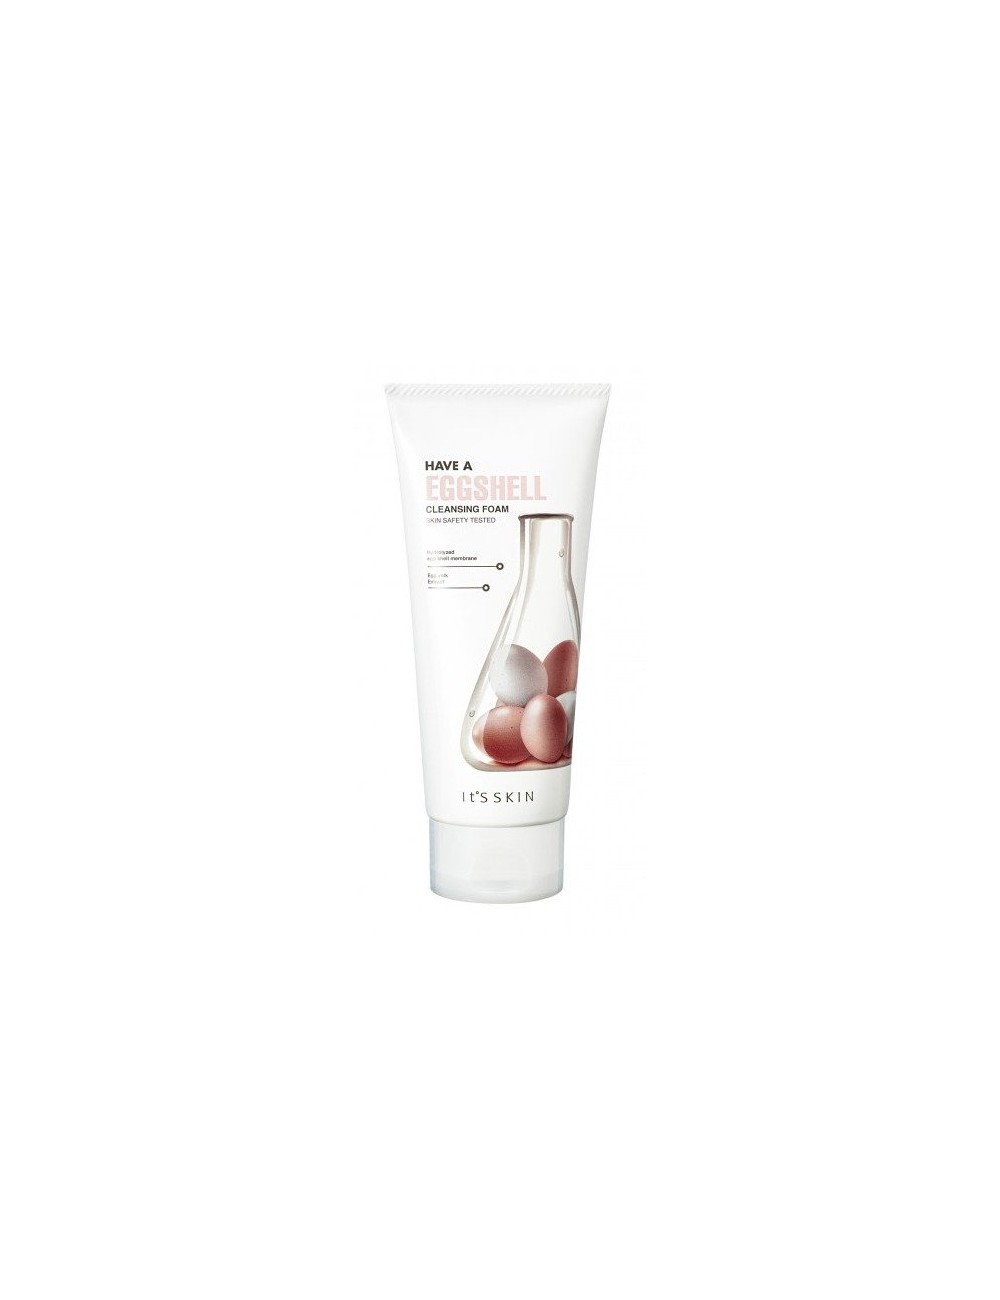 Espuma Limpiadora y Purificante IT'S SKIN Have a Eggshell Cleansing Foam